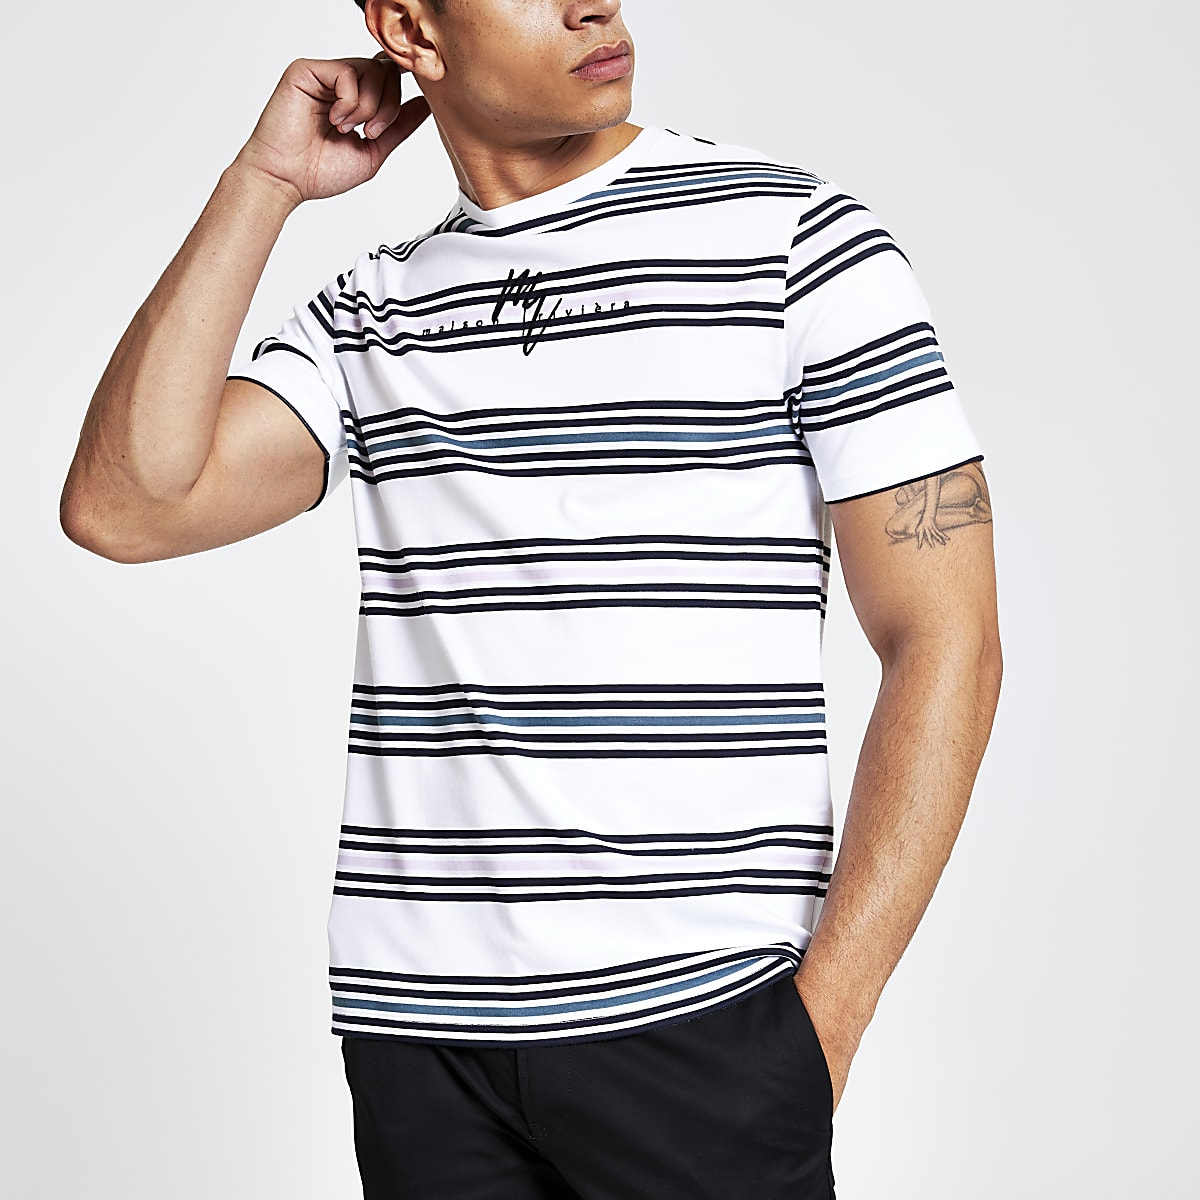 White stripe Maison Riviera slim fit T-shirt